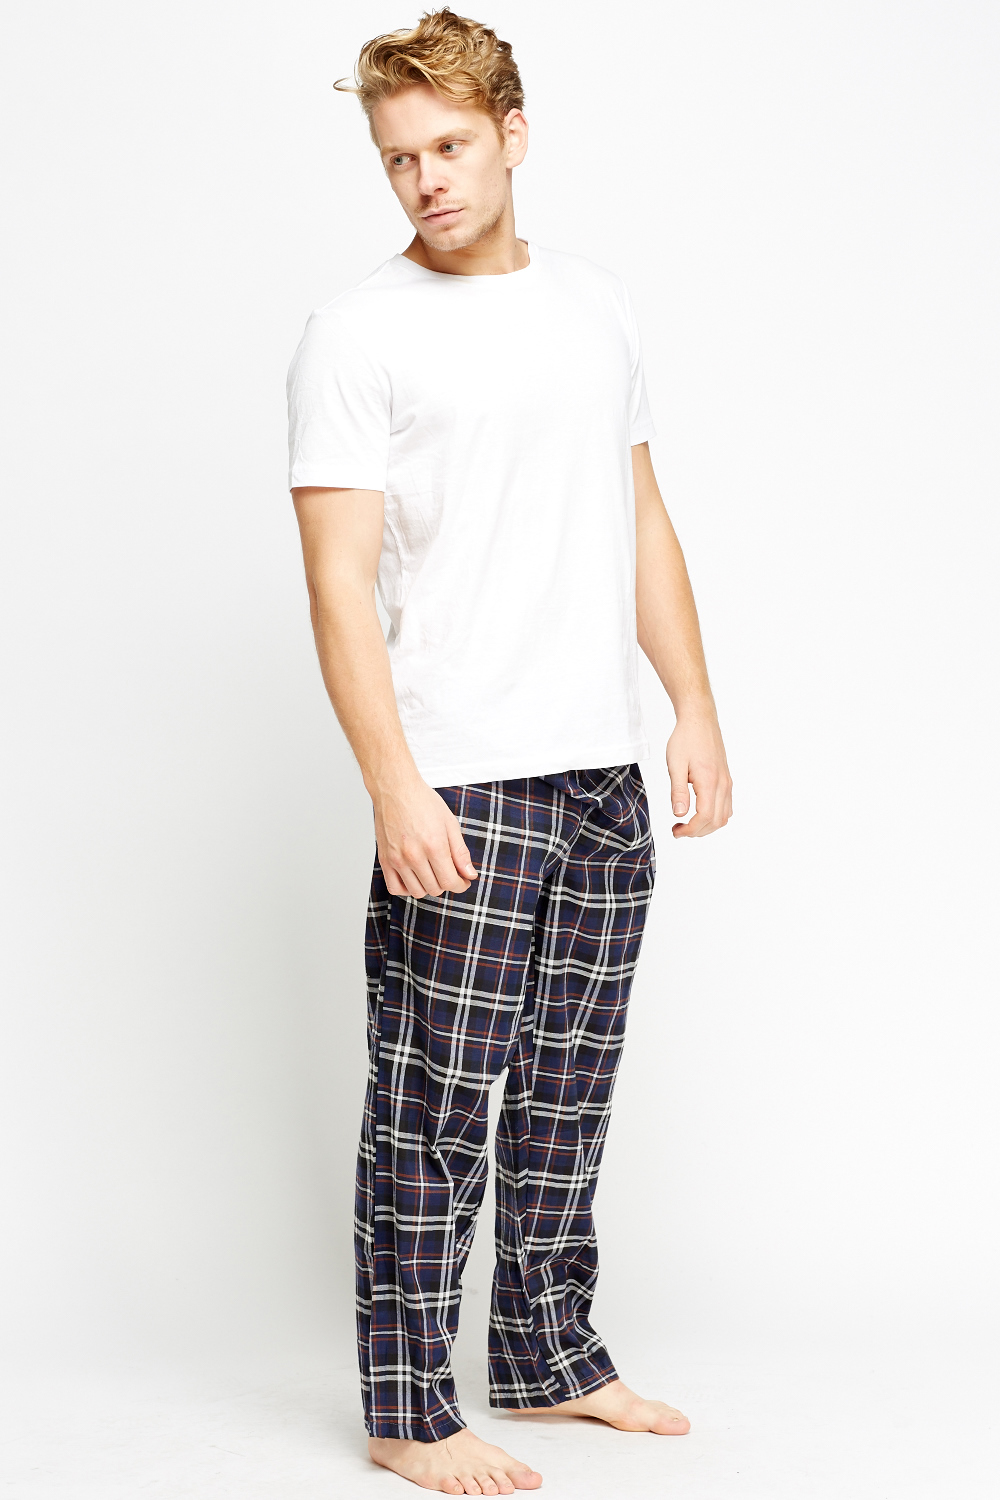 Discover the men's loungewear range at ASOS for an extra comfy time. From slouchy jersey tops & bottoms, to tanks & sleepwear with ASOS.